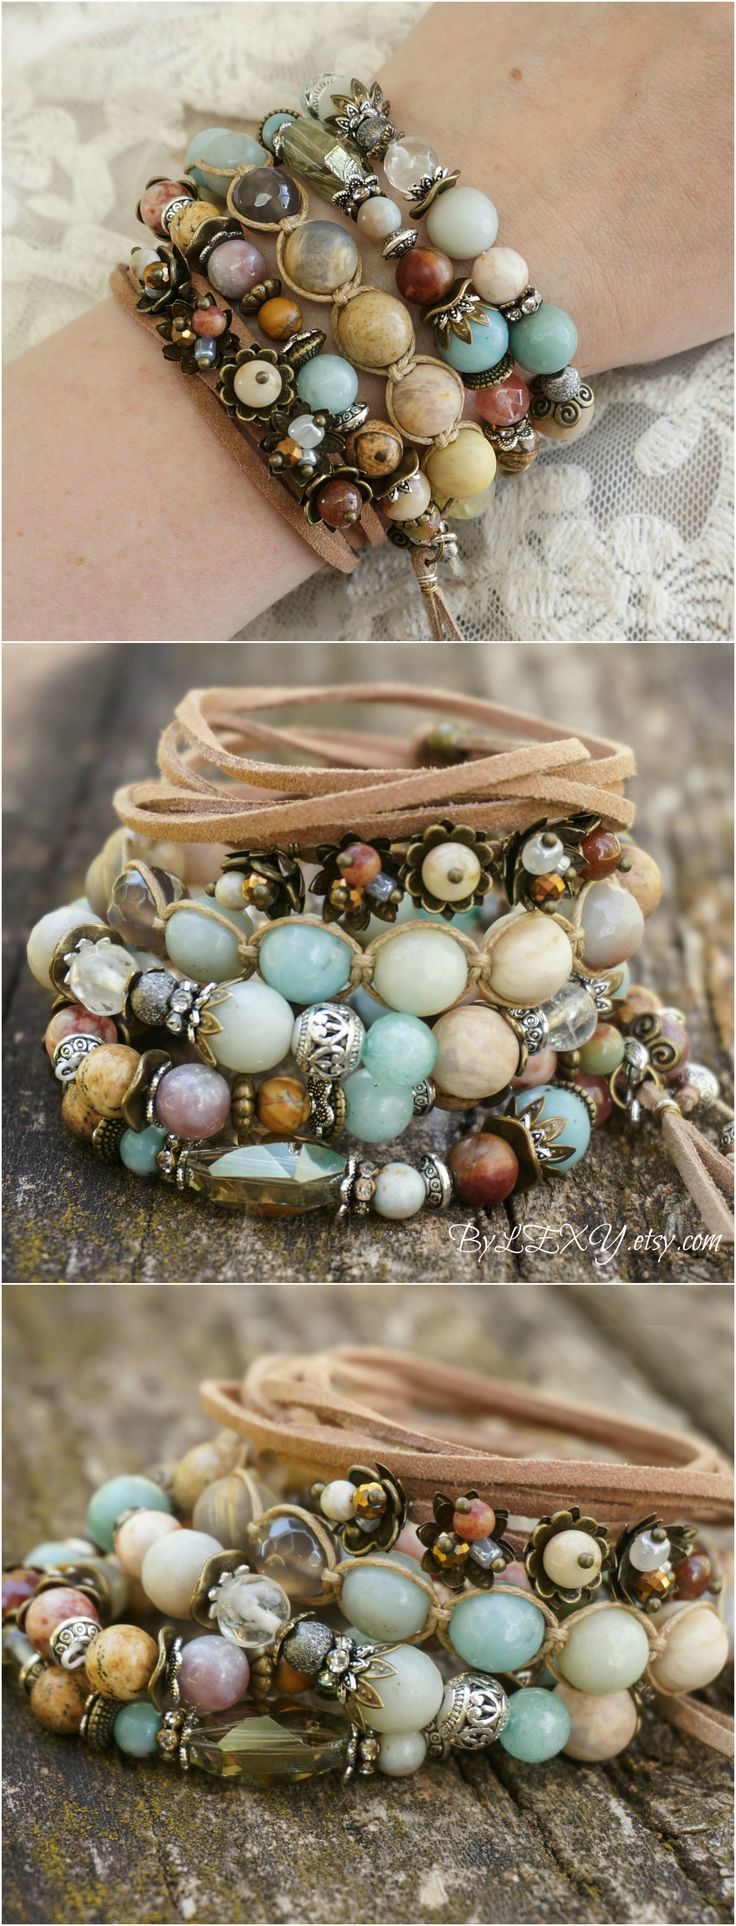 best stack ideas set stretch beads on cheap wrap images boho crystal wholesale inspirations of jewelry bracelets symphony hippie chic floral gypsy